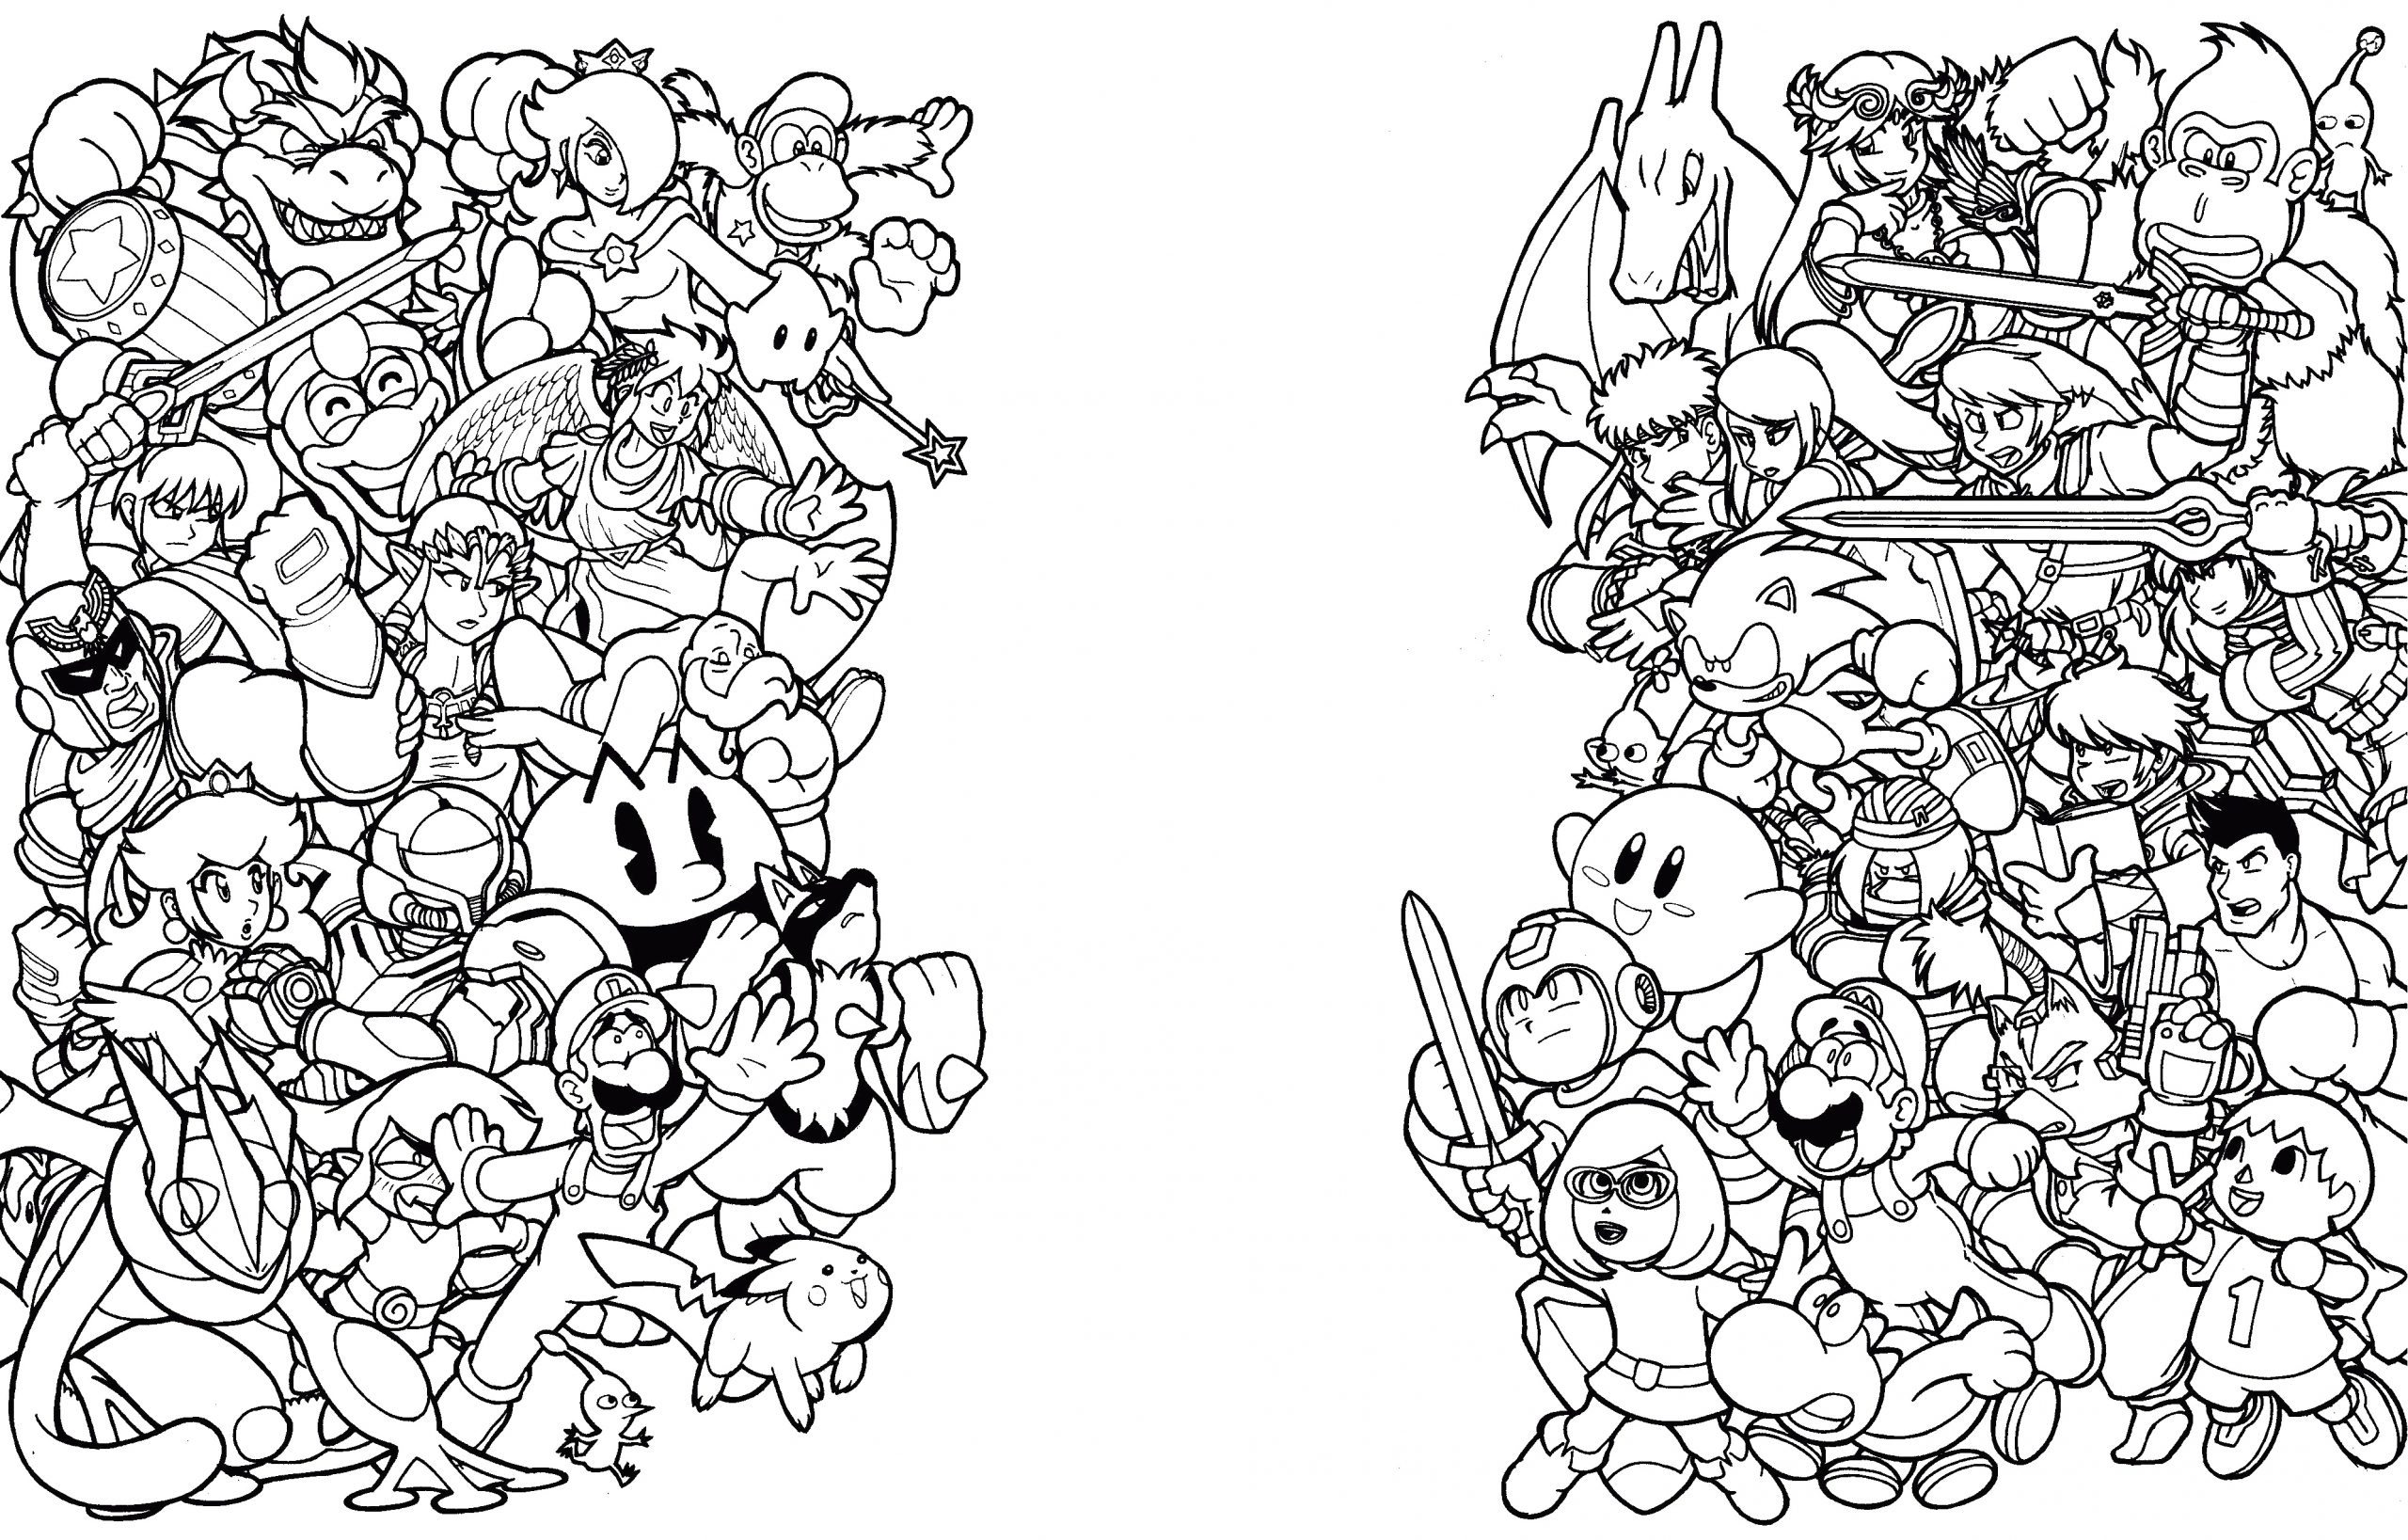 Printable Super Smash Bros Ultimate Coloring Pages Super Smash Bros Coloring Pages Freecolorngpages Co with